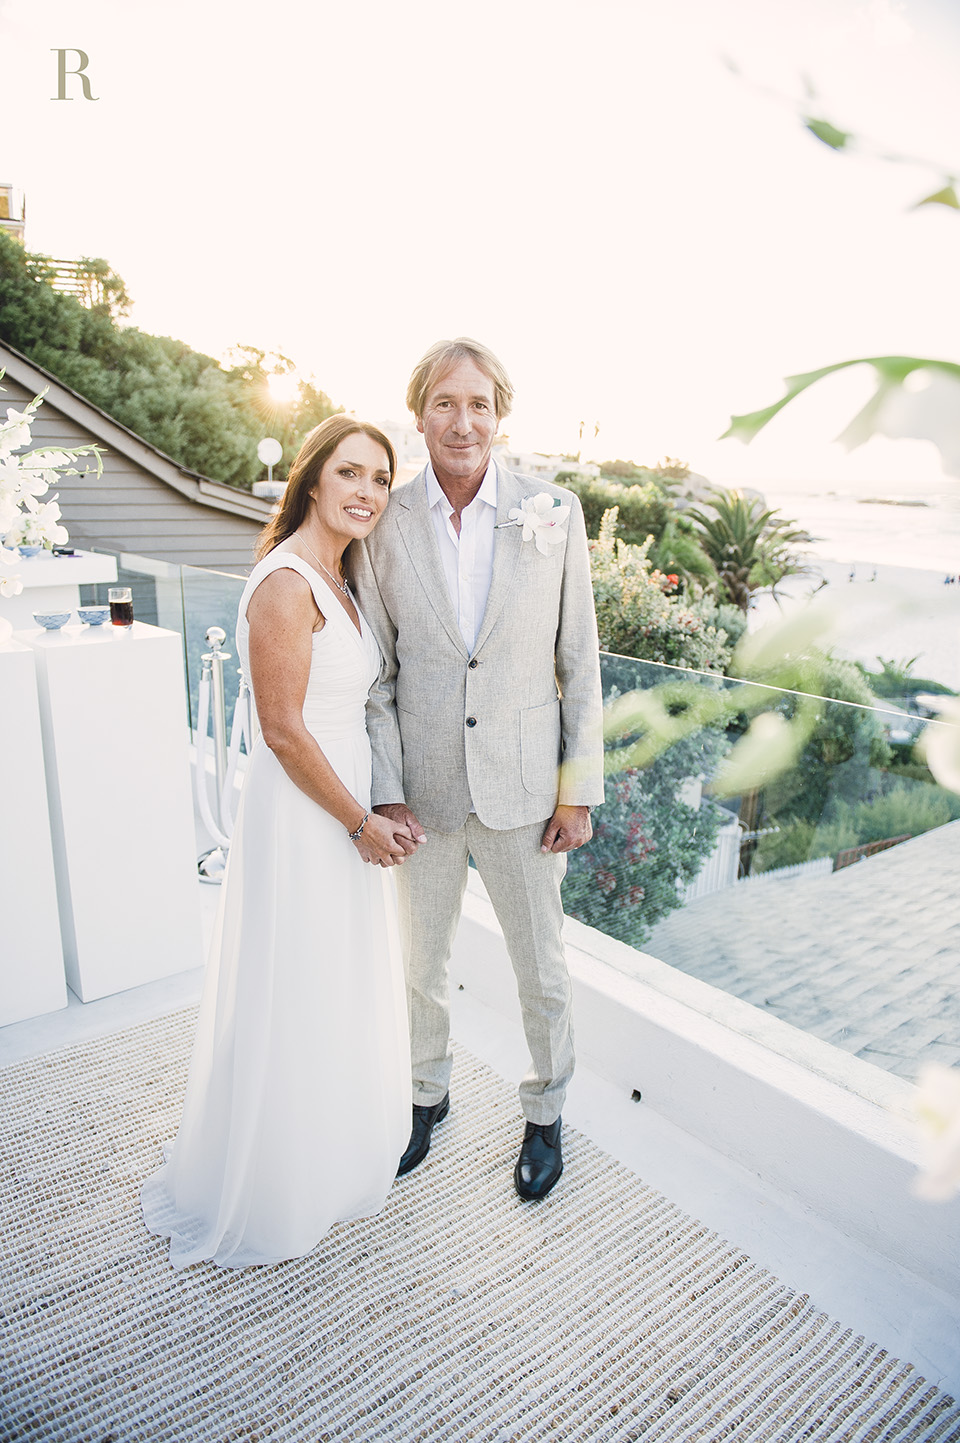 RYAN PARKER_WEDDING PHOTOGRAPHER_CAPE TOWN_CLIFTON_VANILLA ICE_AMAZING SPACES_WEDDING_D&A DSC_5772.jpg